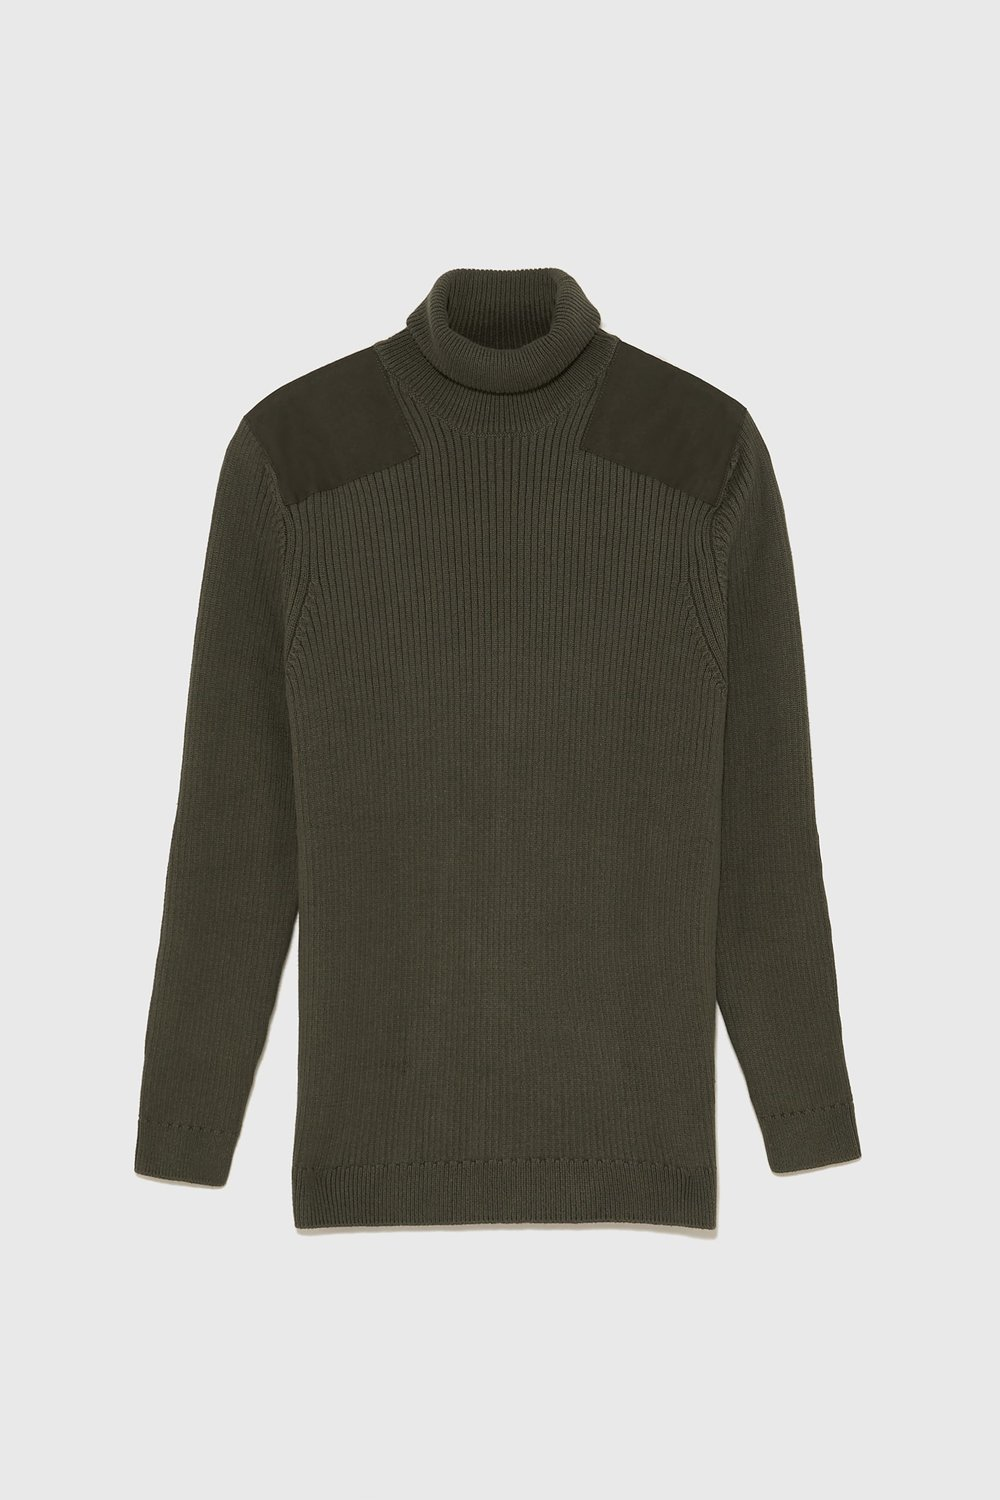 Zara turtle-neck sweater - £29.99 - We will be living in this until it starts to get a little warmer